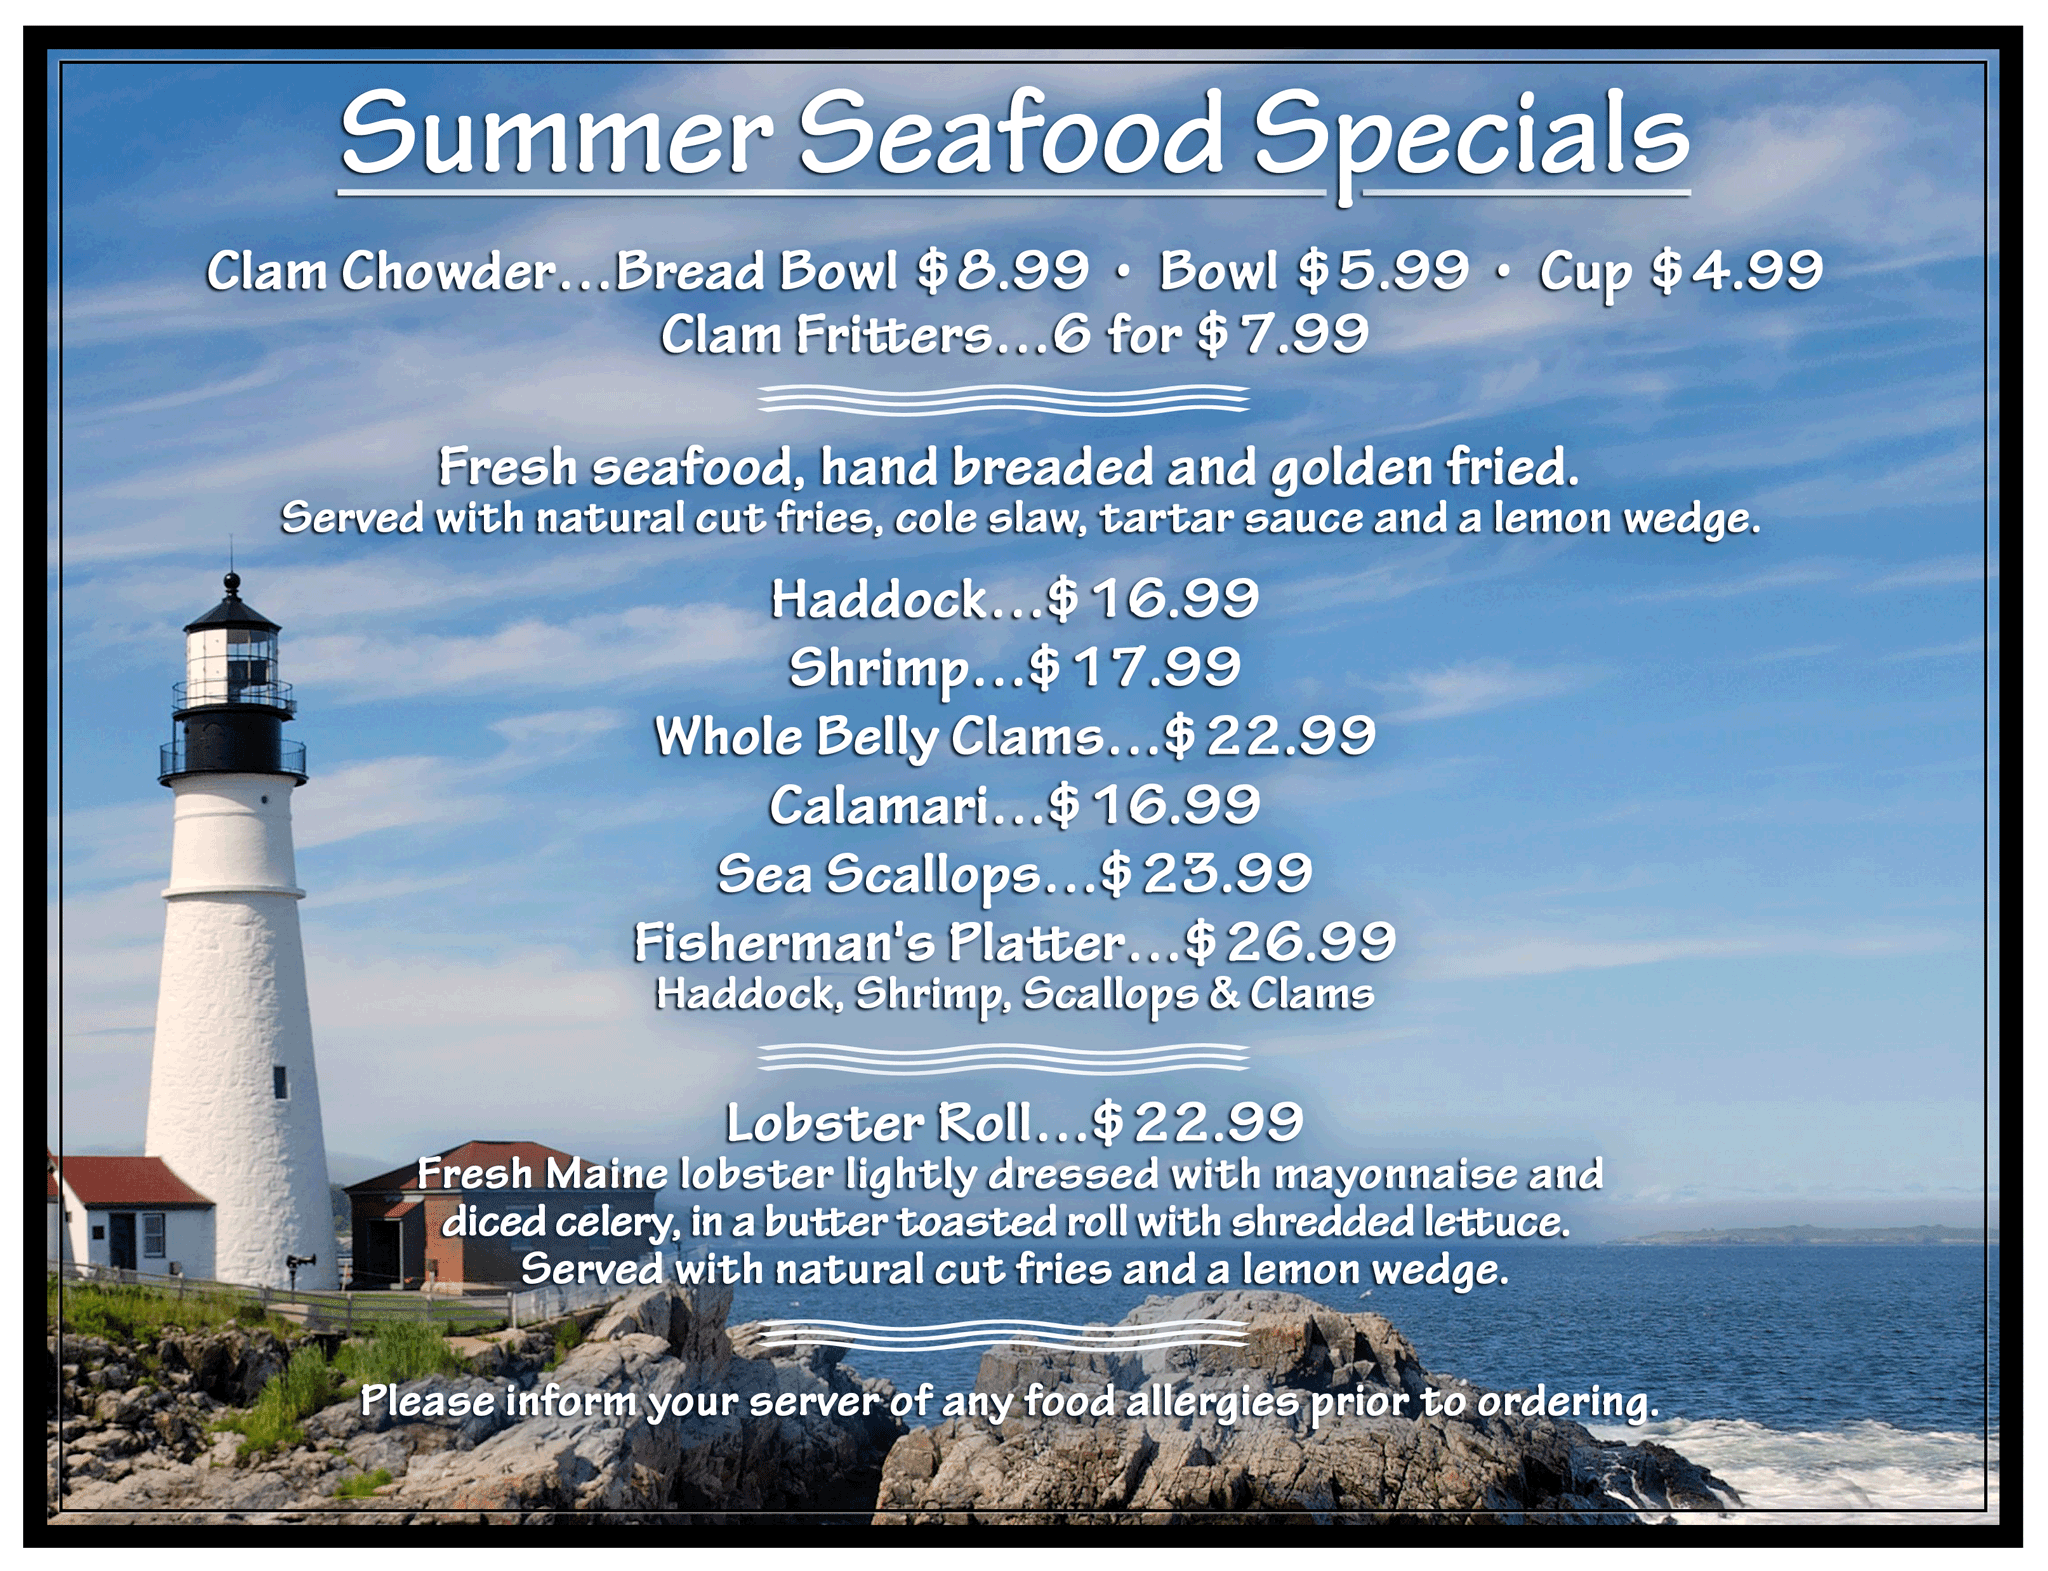 seafood specials 19 FRONT 2 - Summer Seafood Menu